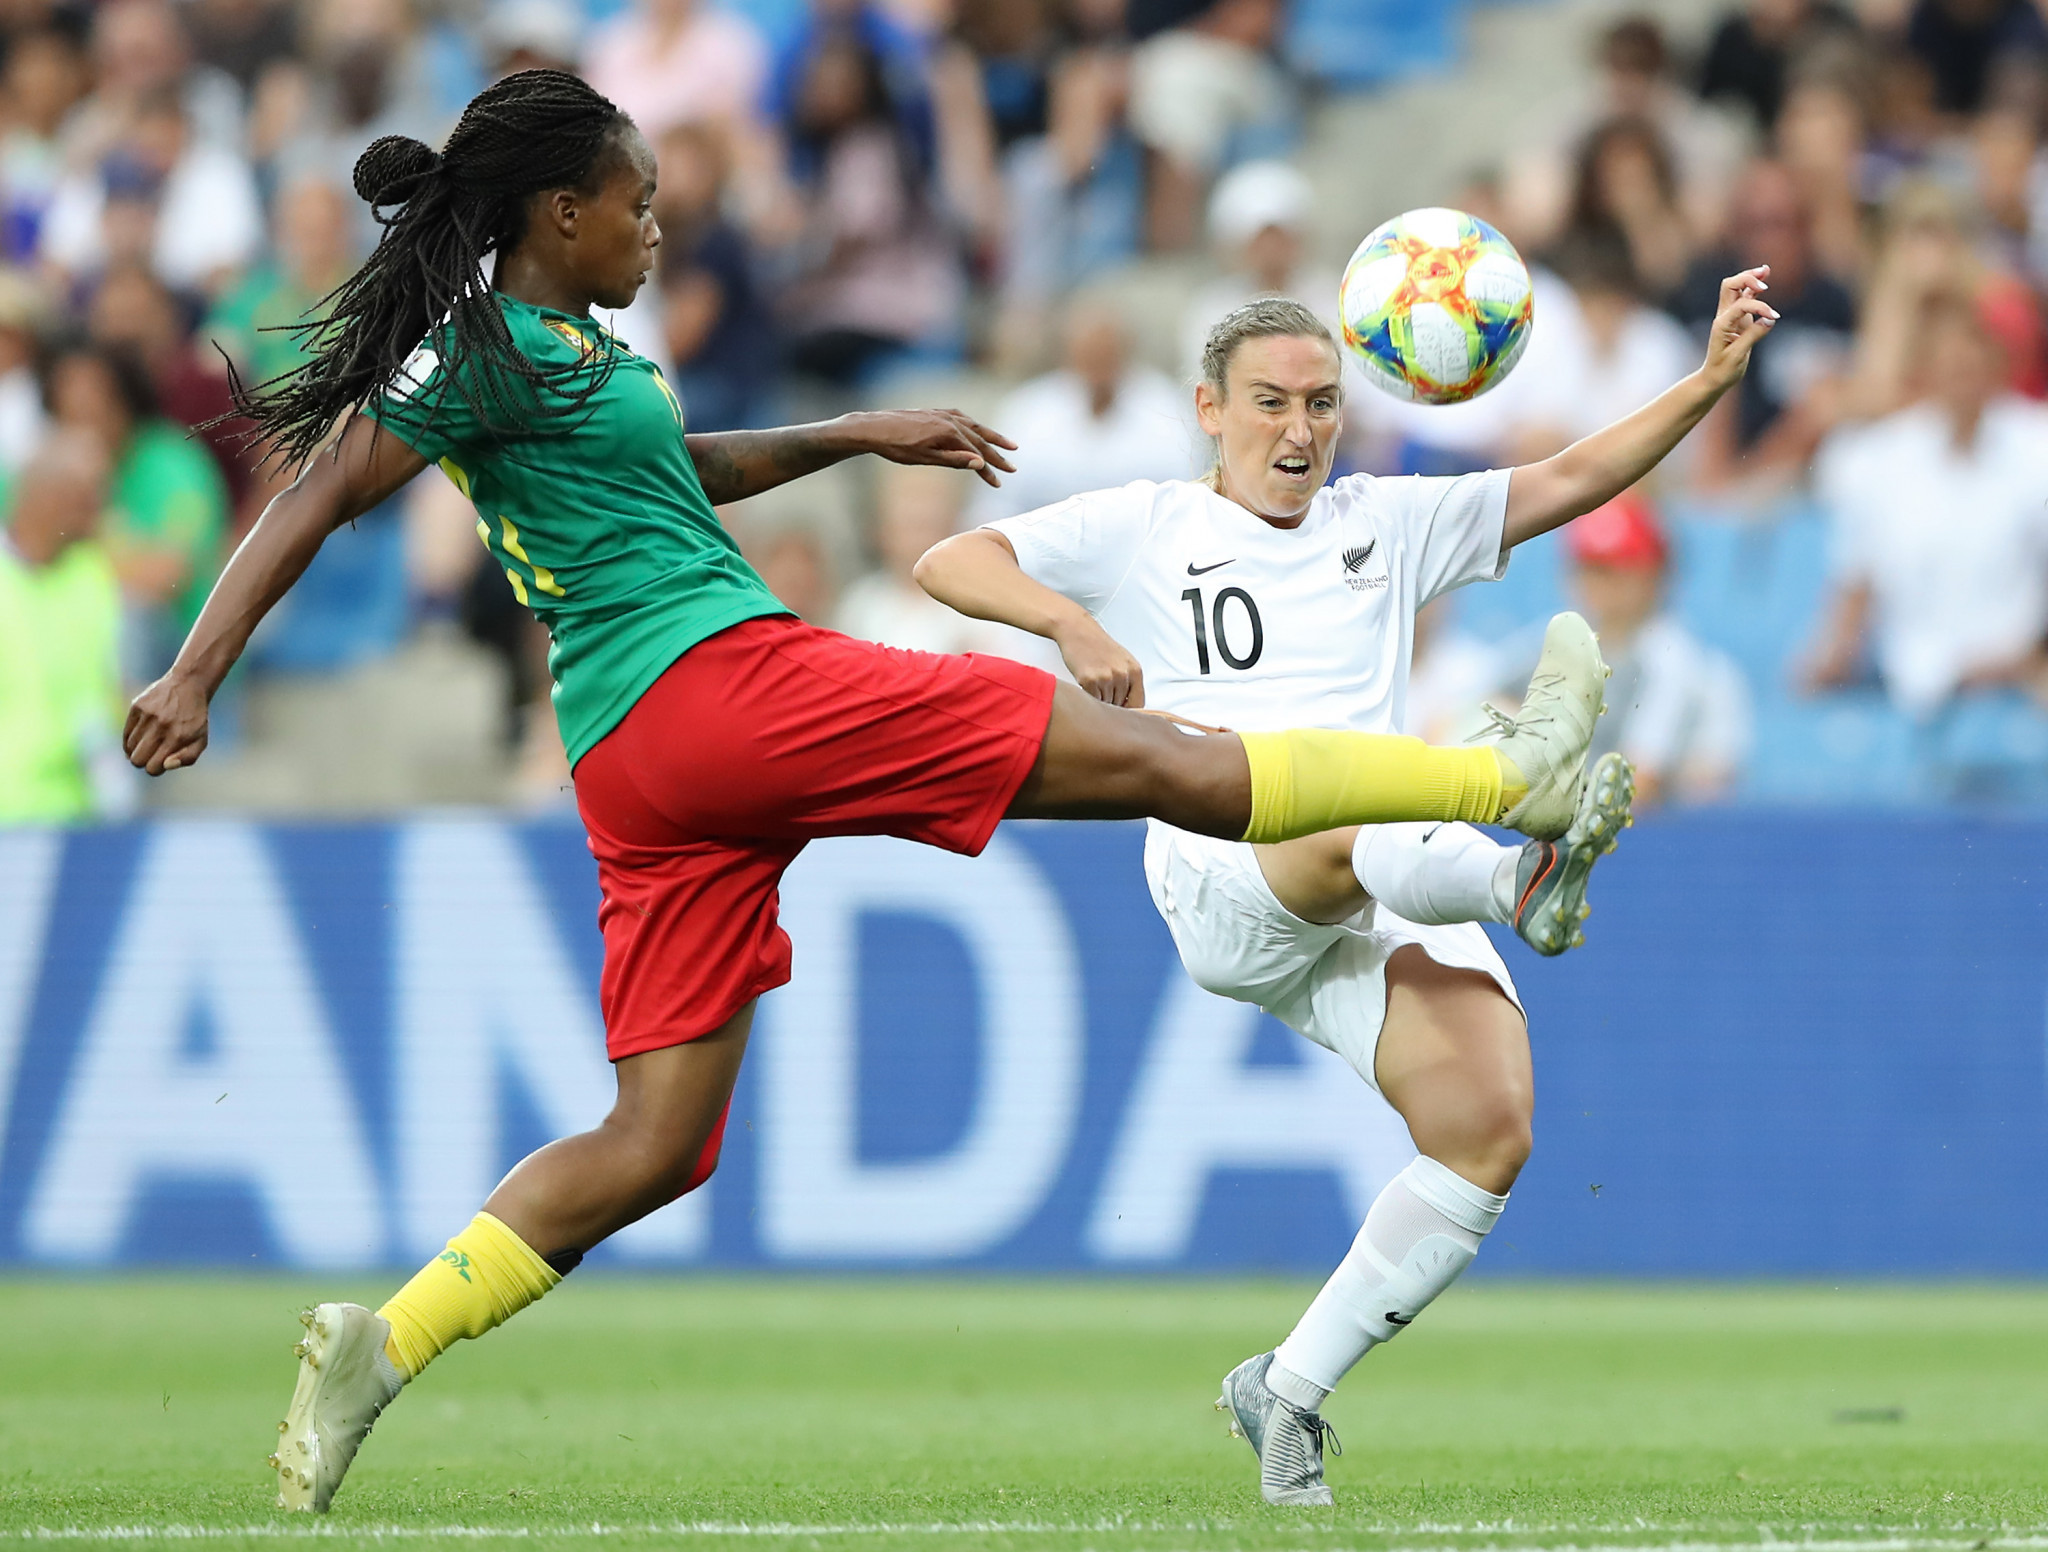 Cameroon edged past New Zealand to reach the last 16 of the FIFA Women's World Cup ©Getty Images